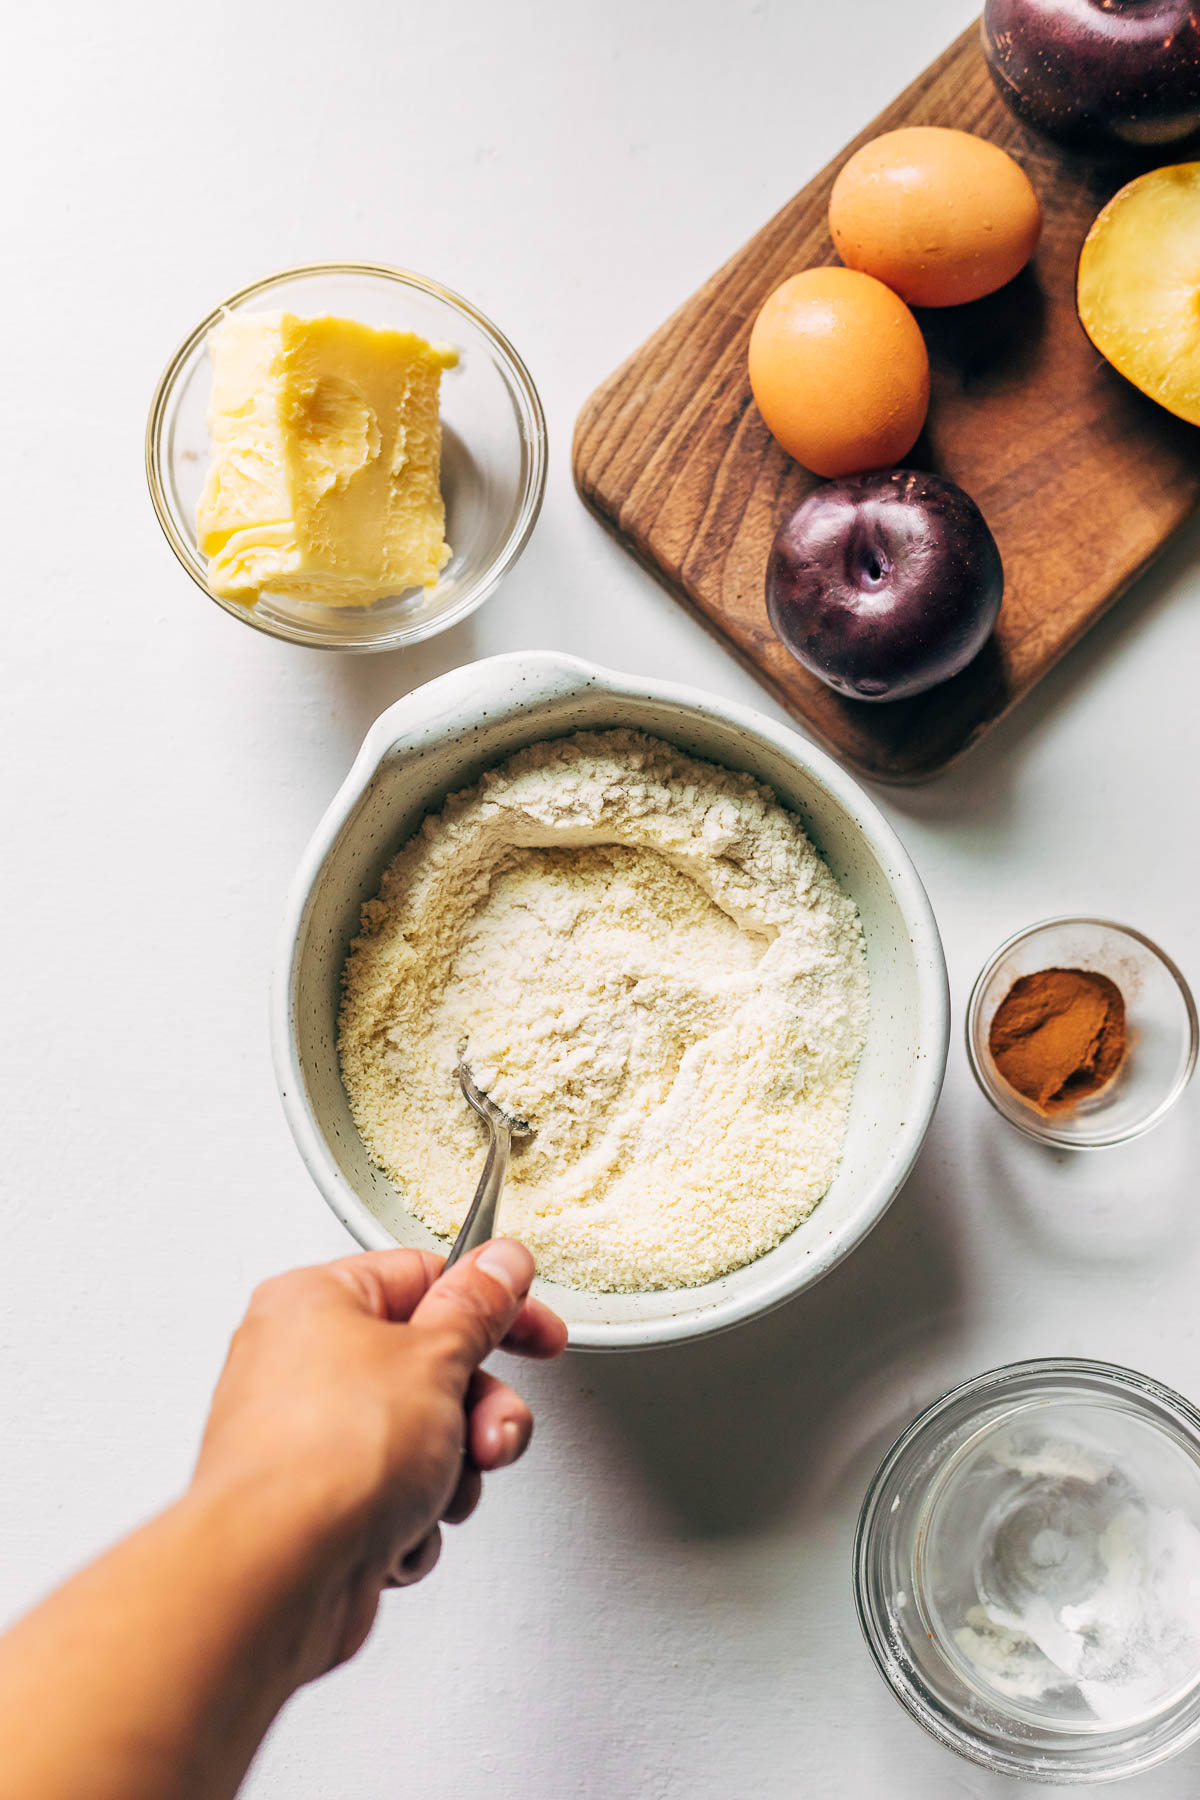 A hand mixing gluten-free flours next to other ingredients to make a plum torte.